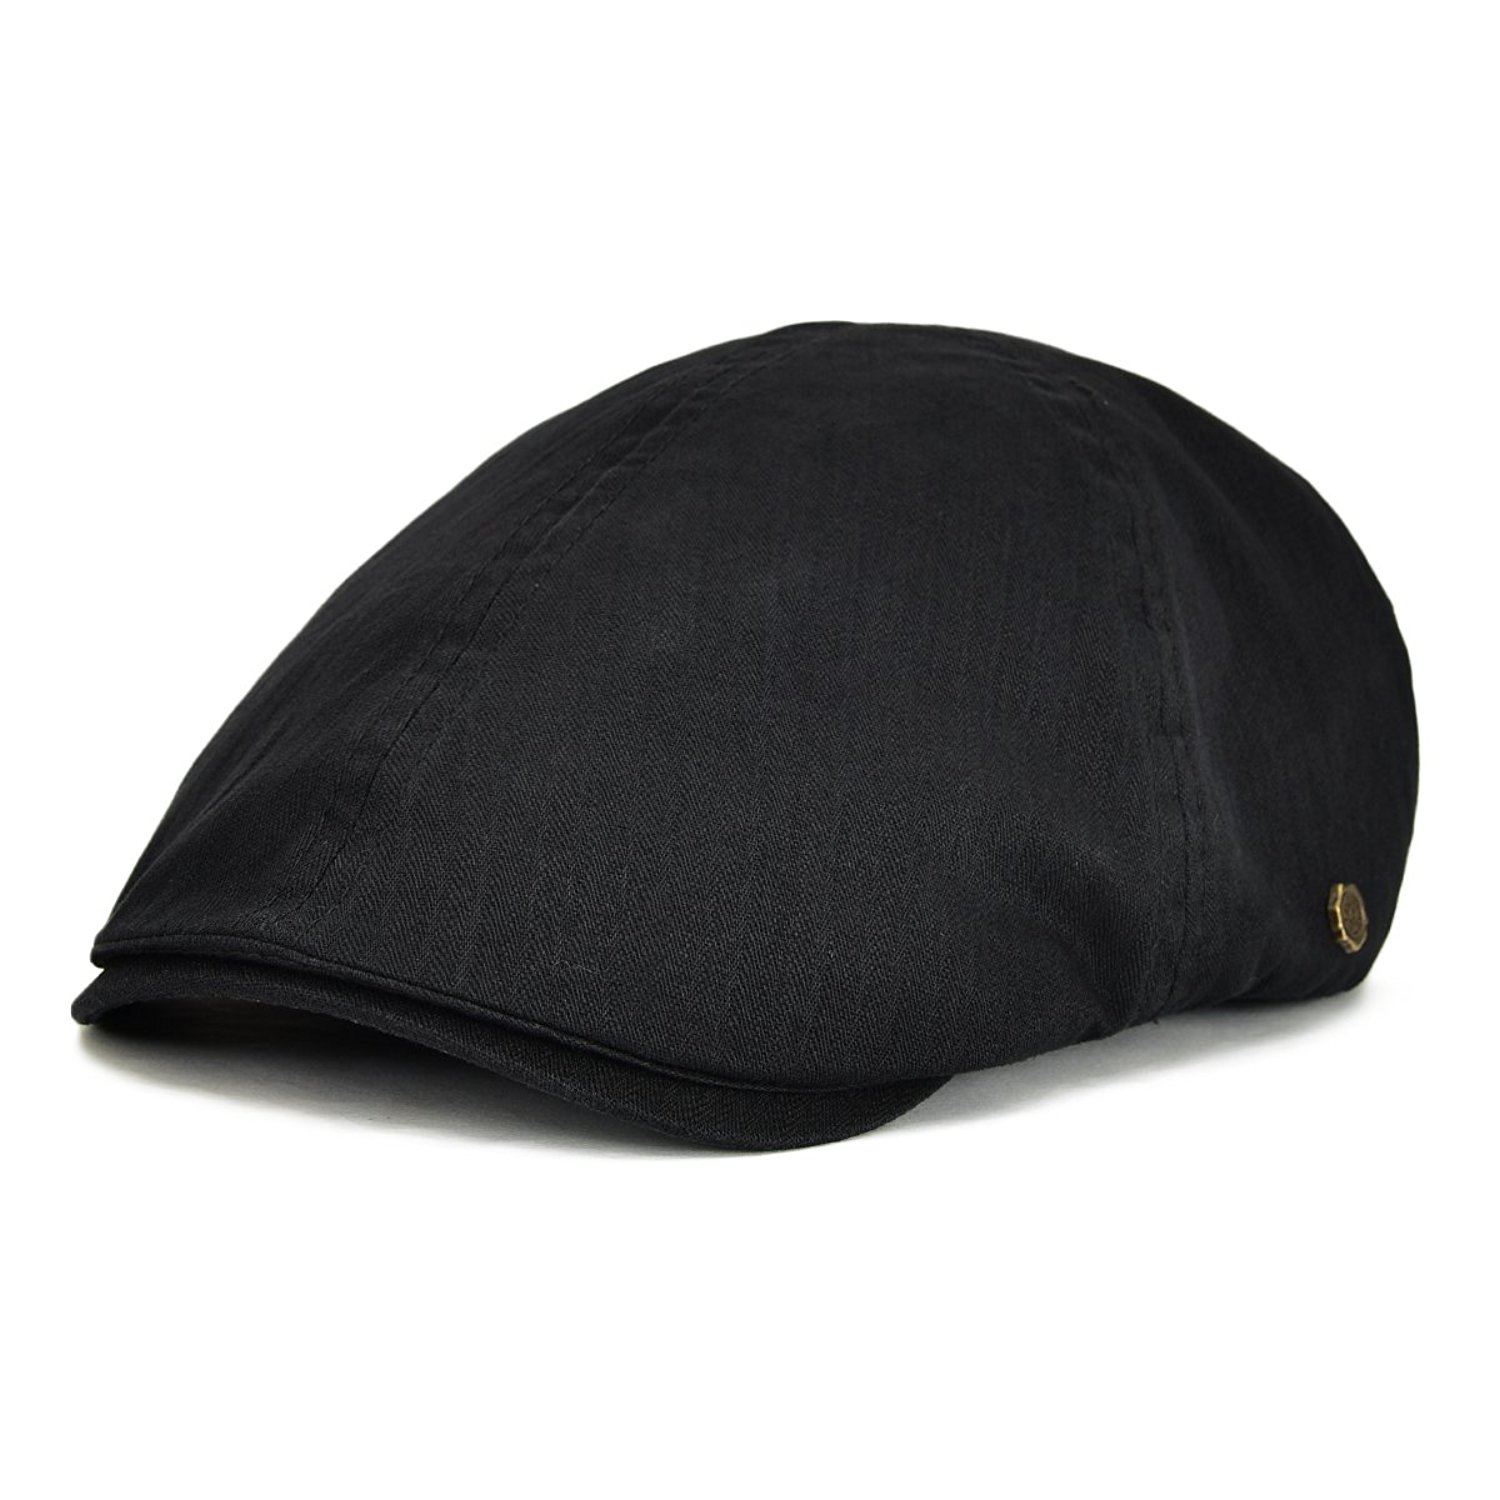 66bbf4a86 Cheap Ivy Caps For Men, find Ivy Caps For Men deals on line at ...